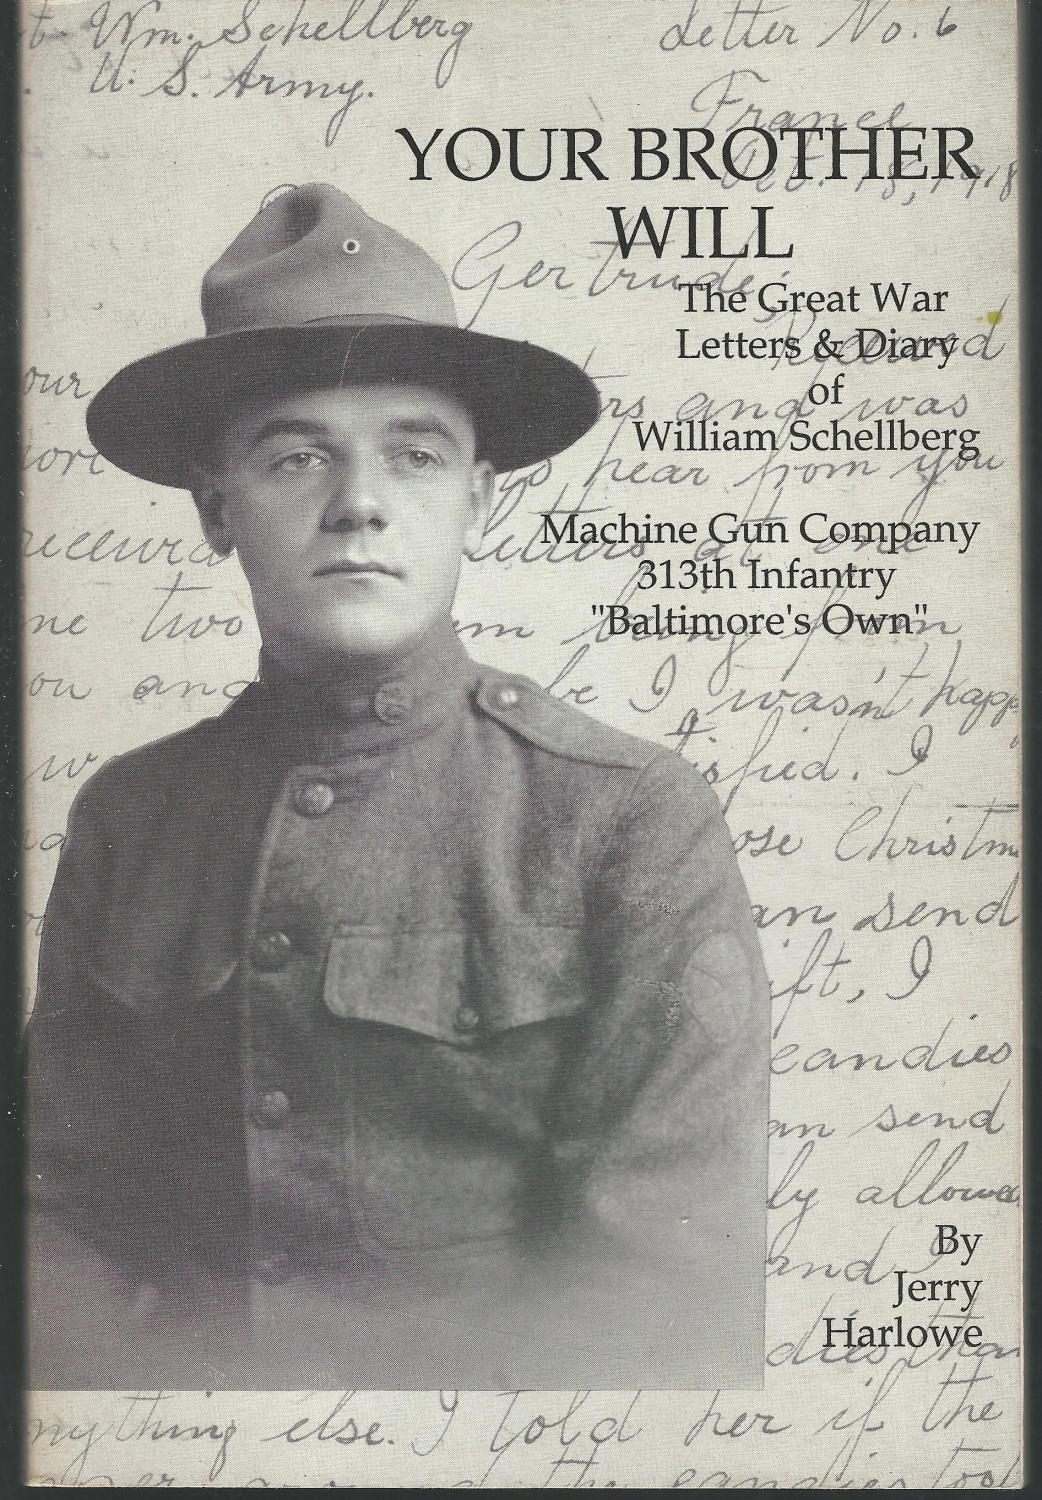 """Your brother Will: The Great War letters and diary of William Schellberg, Machine Gun Company, 313th Infantry, """"Baltimore's Own"""", 157th Brigade, 79th Division"""